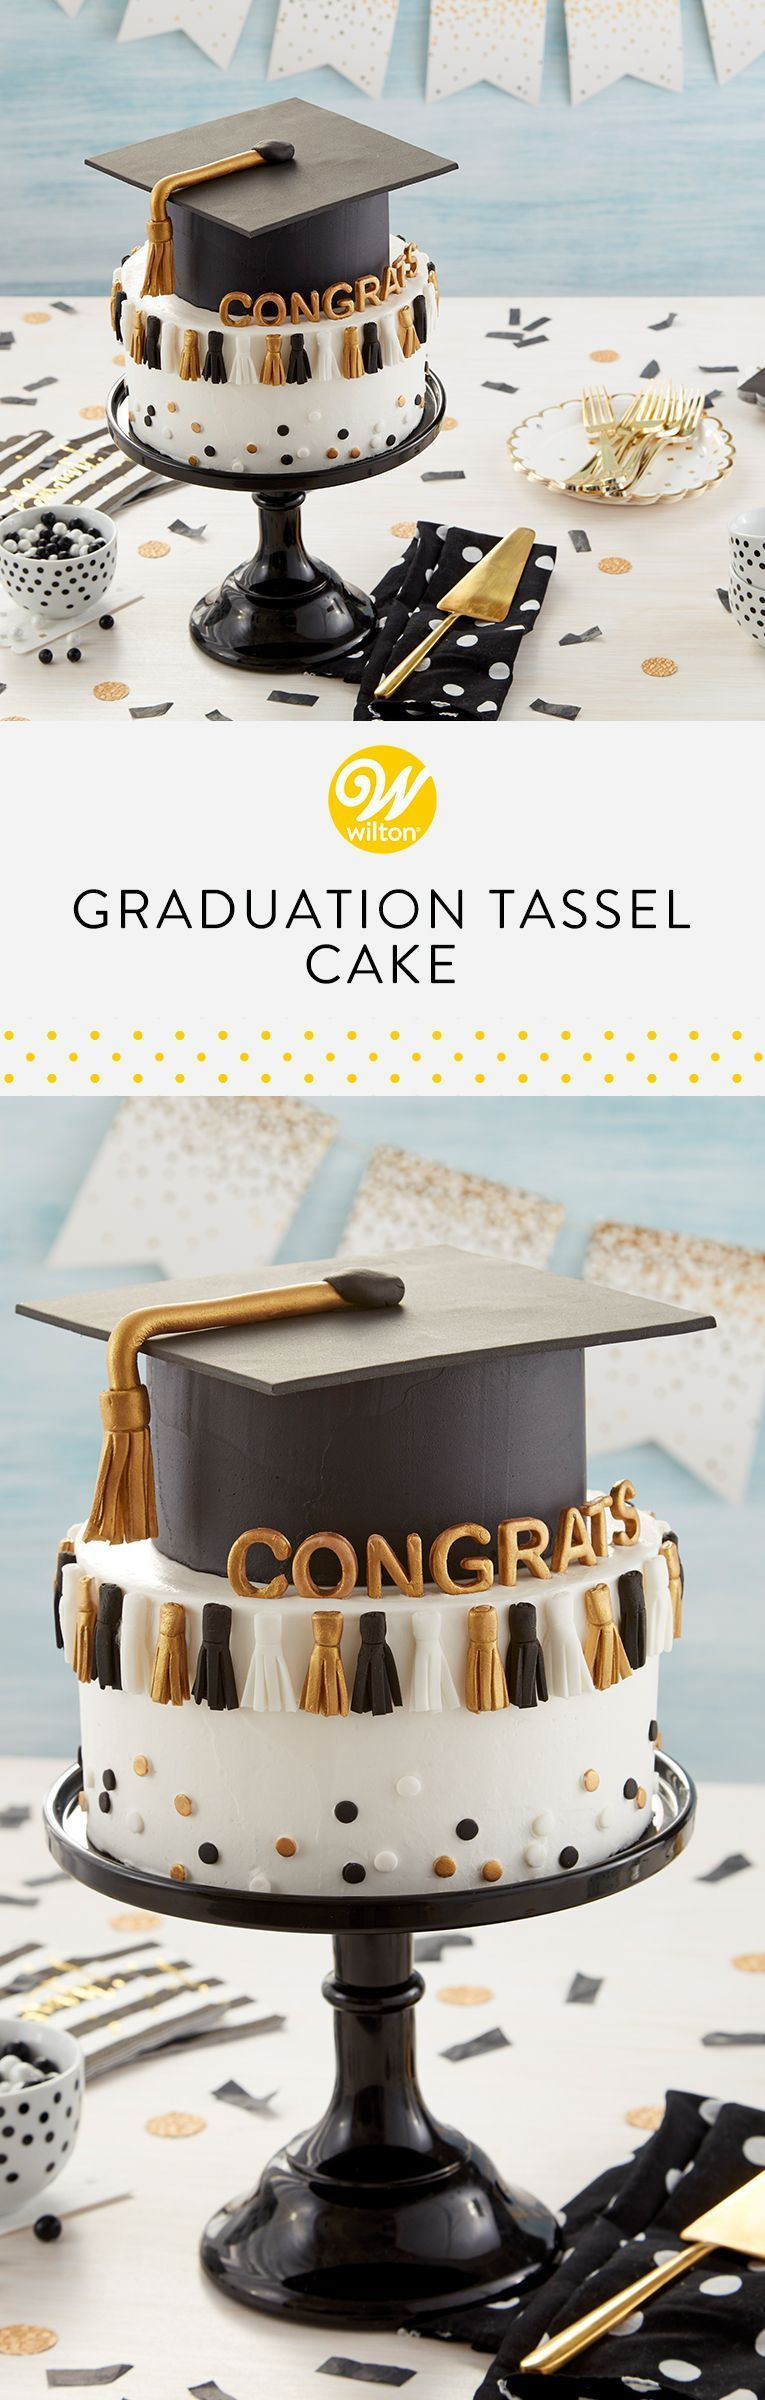 Cake This Graduation Tassel Cake, completed with a gum paste graduation cap and fondant tassels, is the perfect cake for celebrating your graduate's accomplishments! Customize the message for a personal touch!This Graduation Tassel Cake, completed with a gum paste gr...Tassel